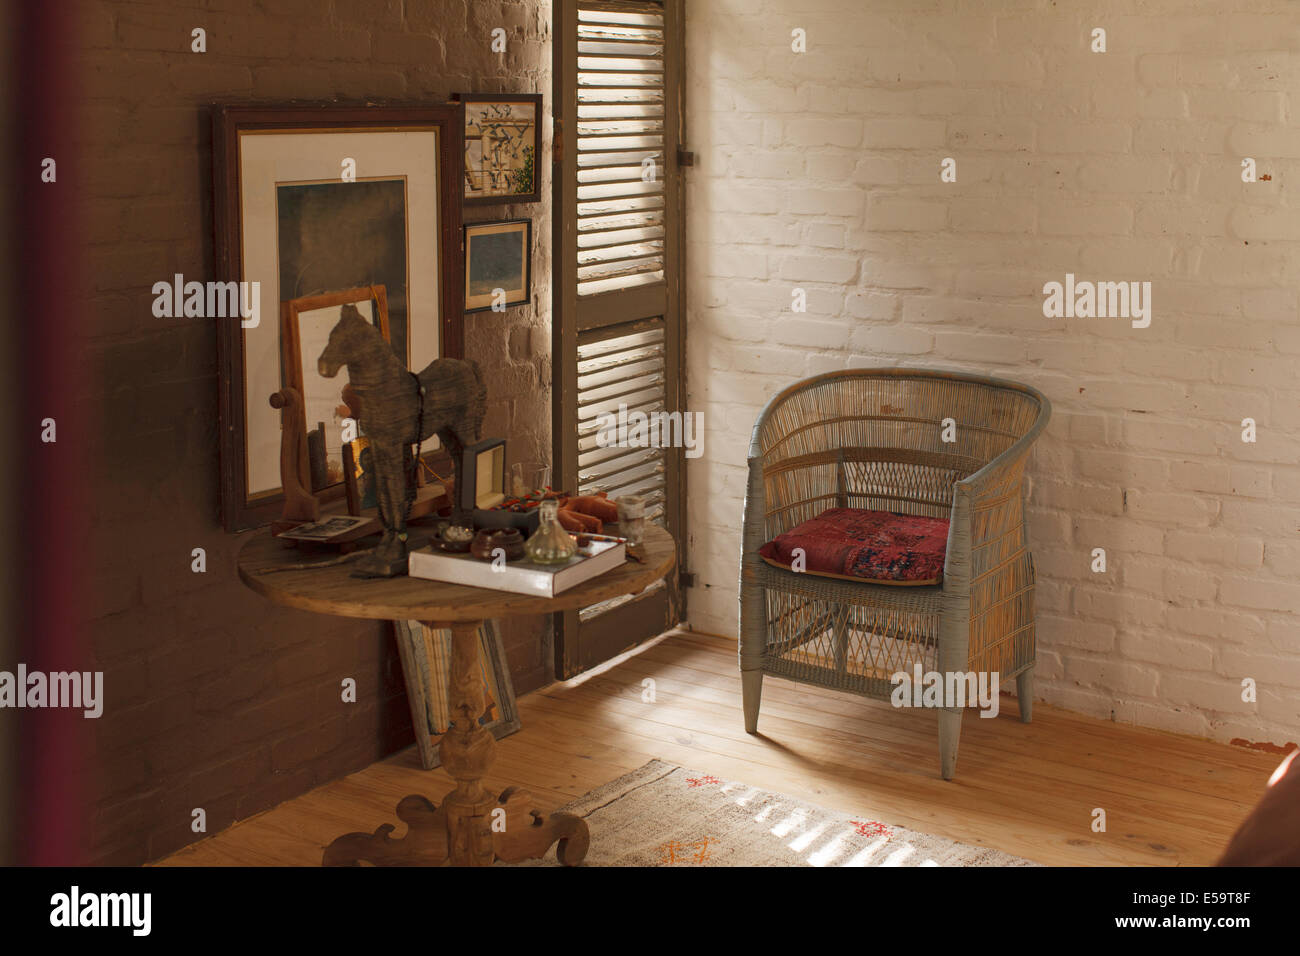 Side table et décorations dans la chambre rustique Photo Stock